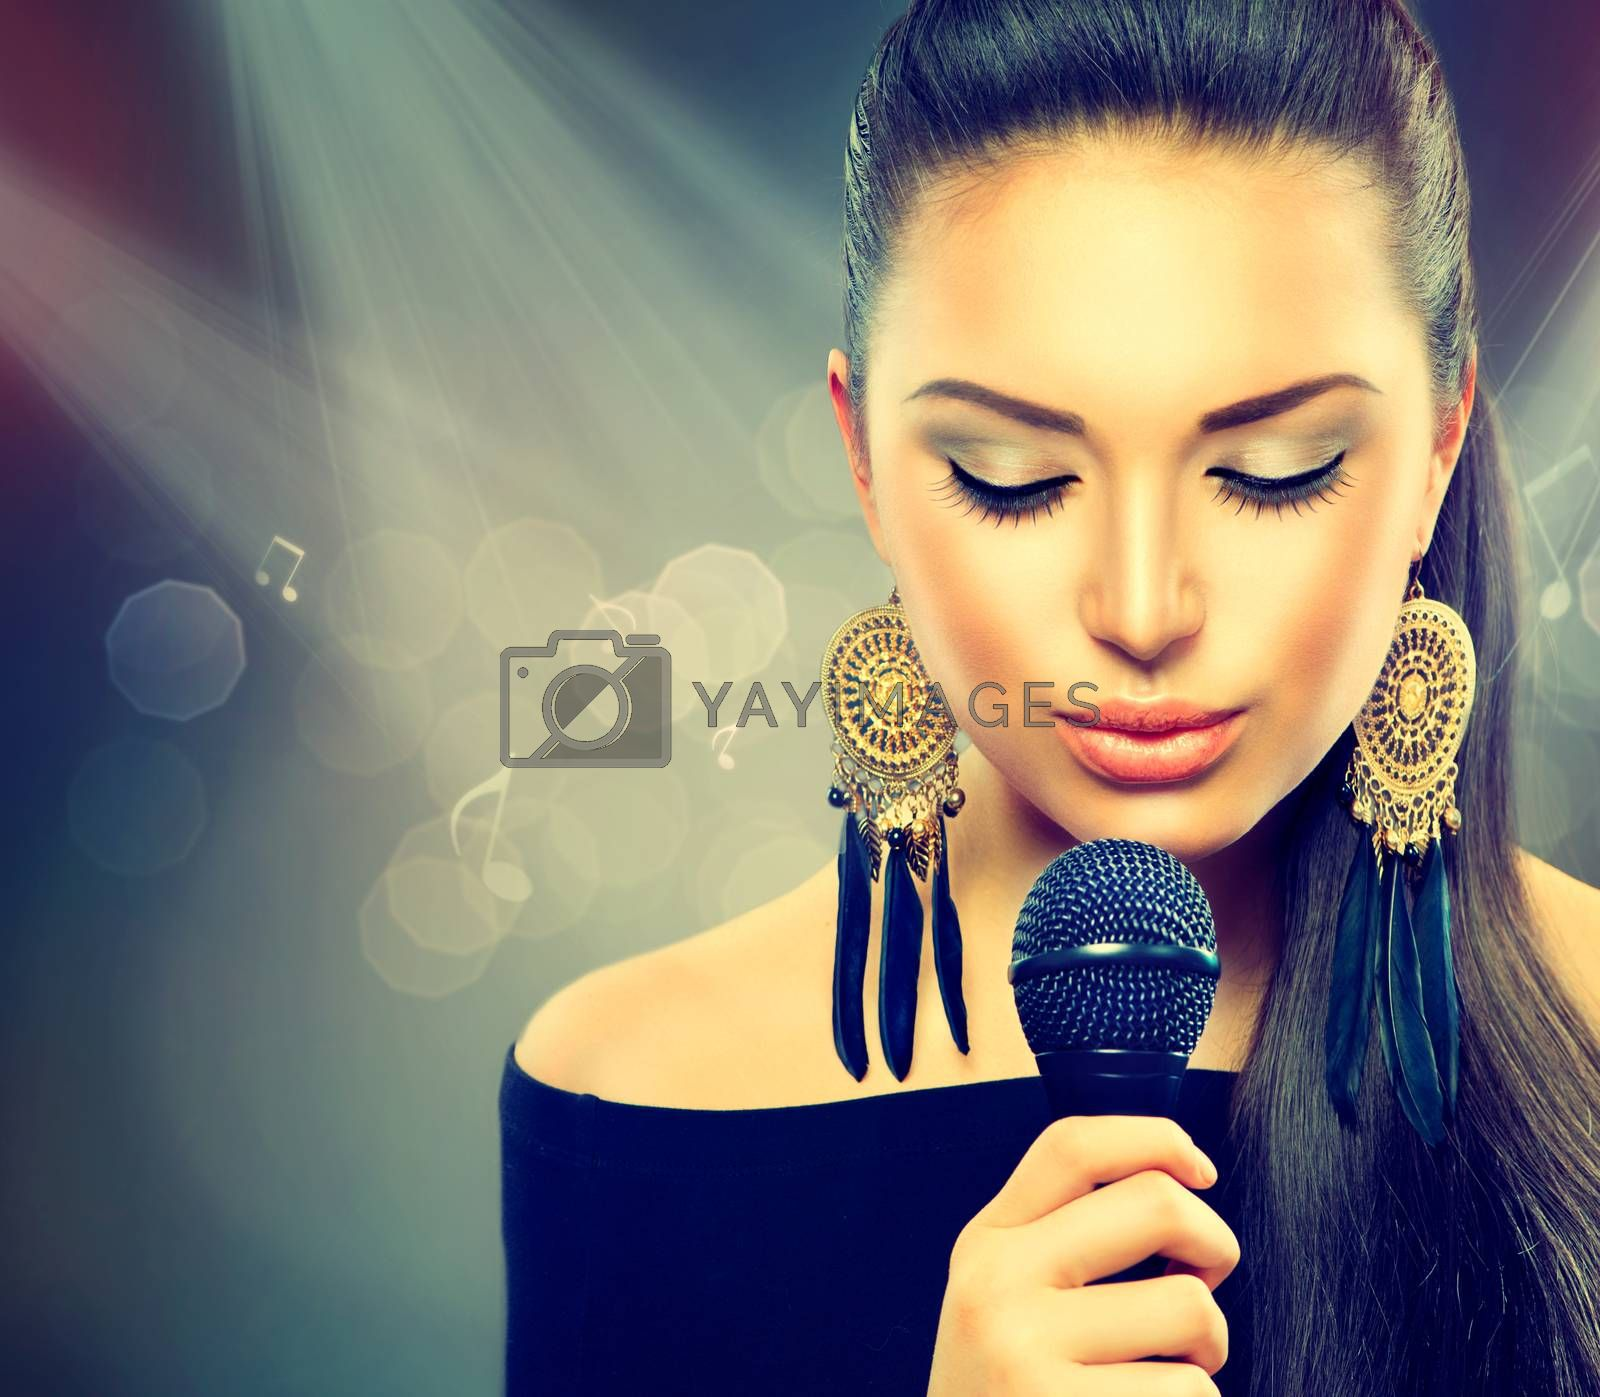 Beautiful Singing Girl. Beauty Woman with Microphone by SubbotinaA